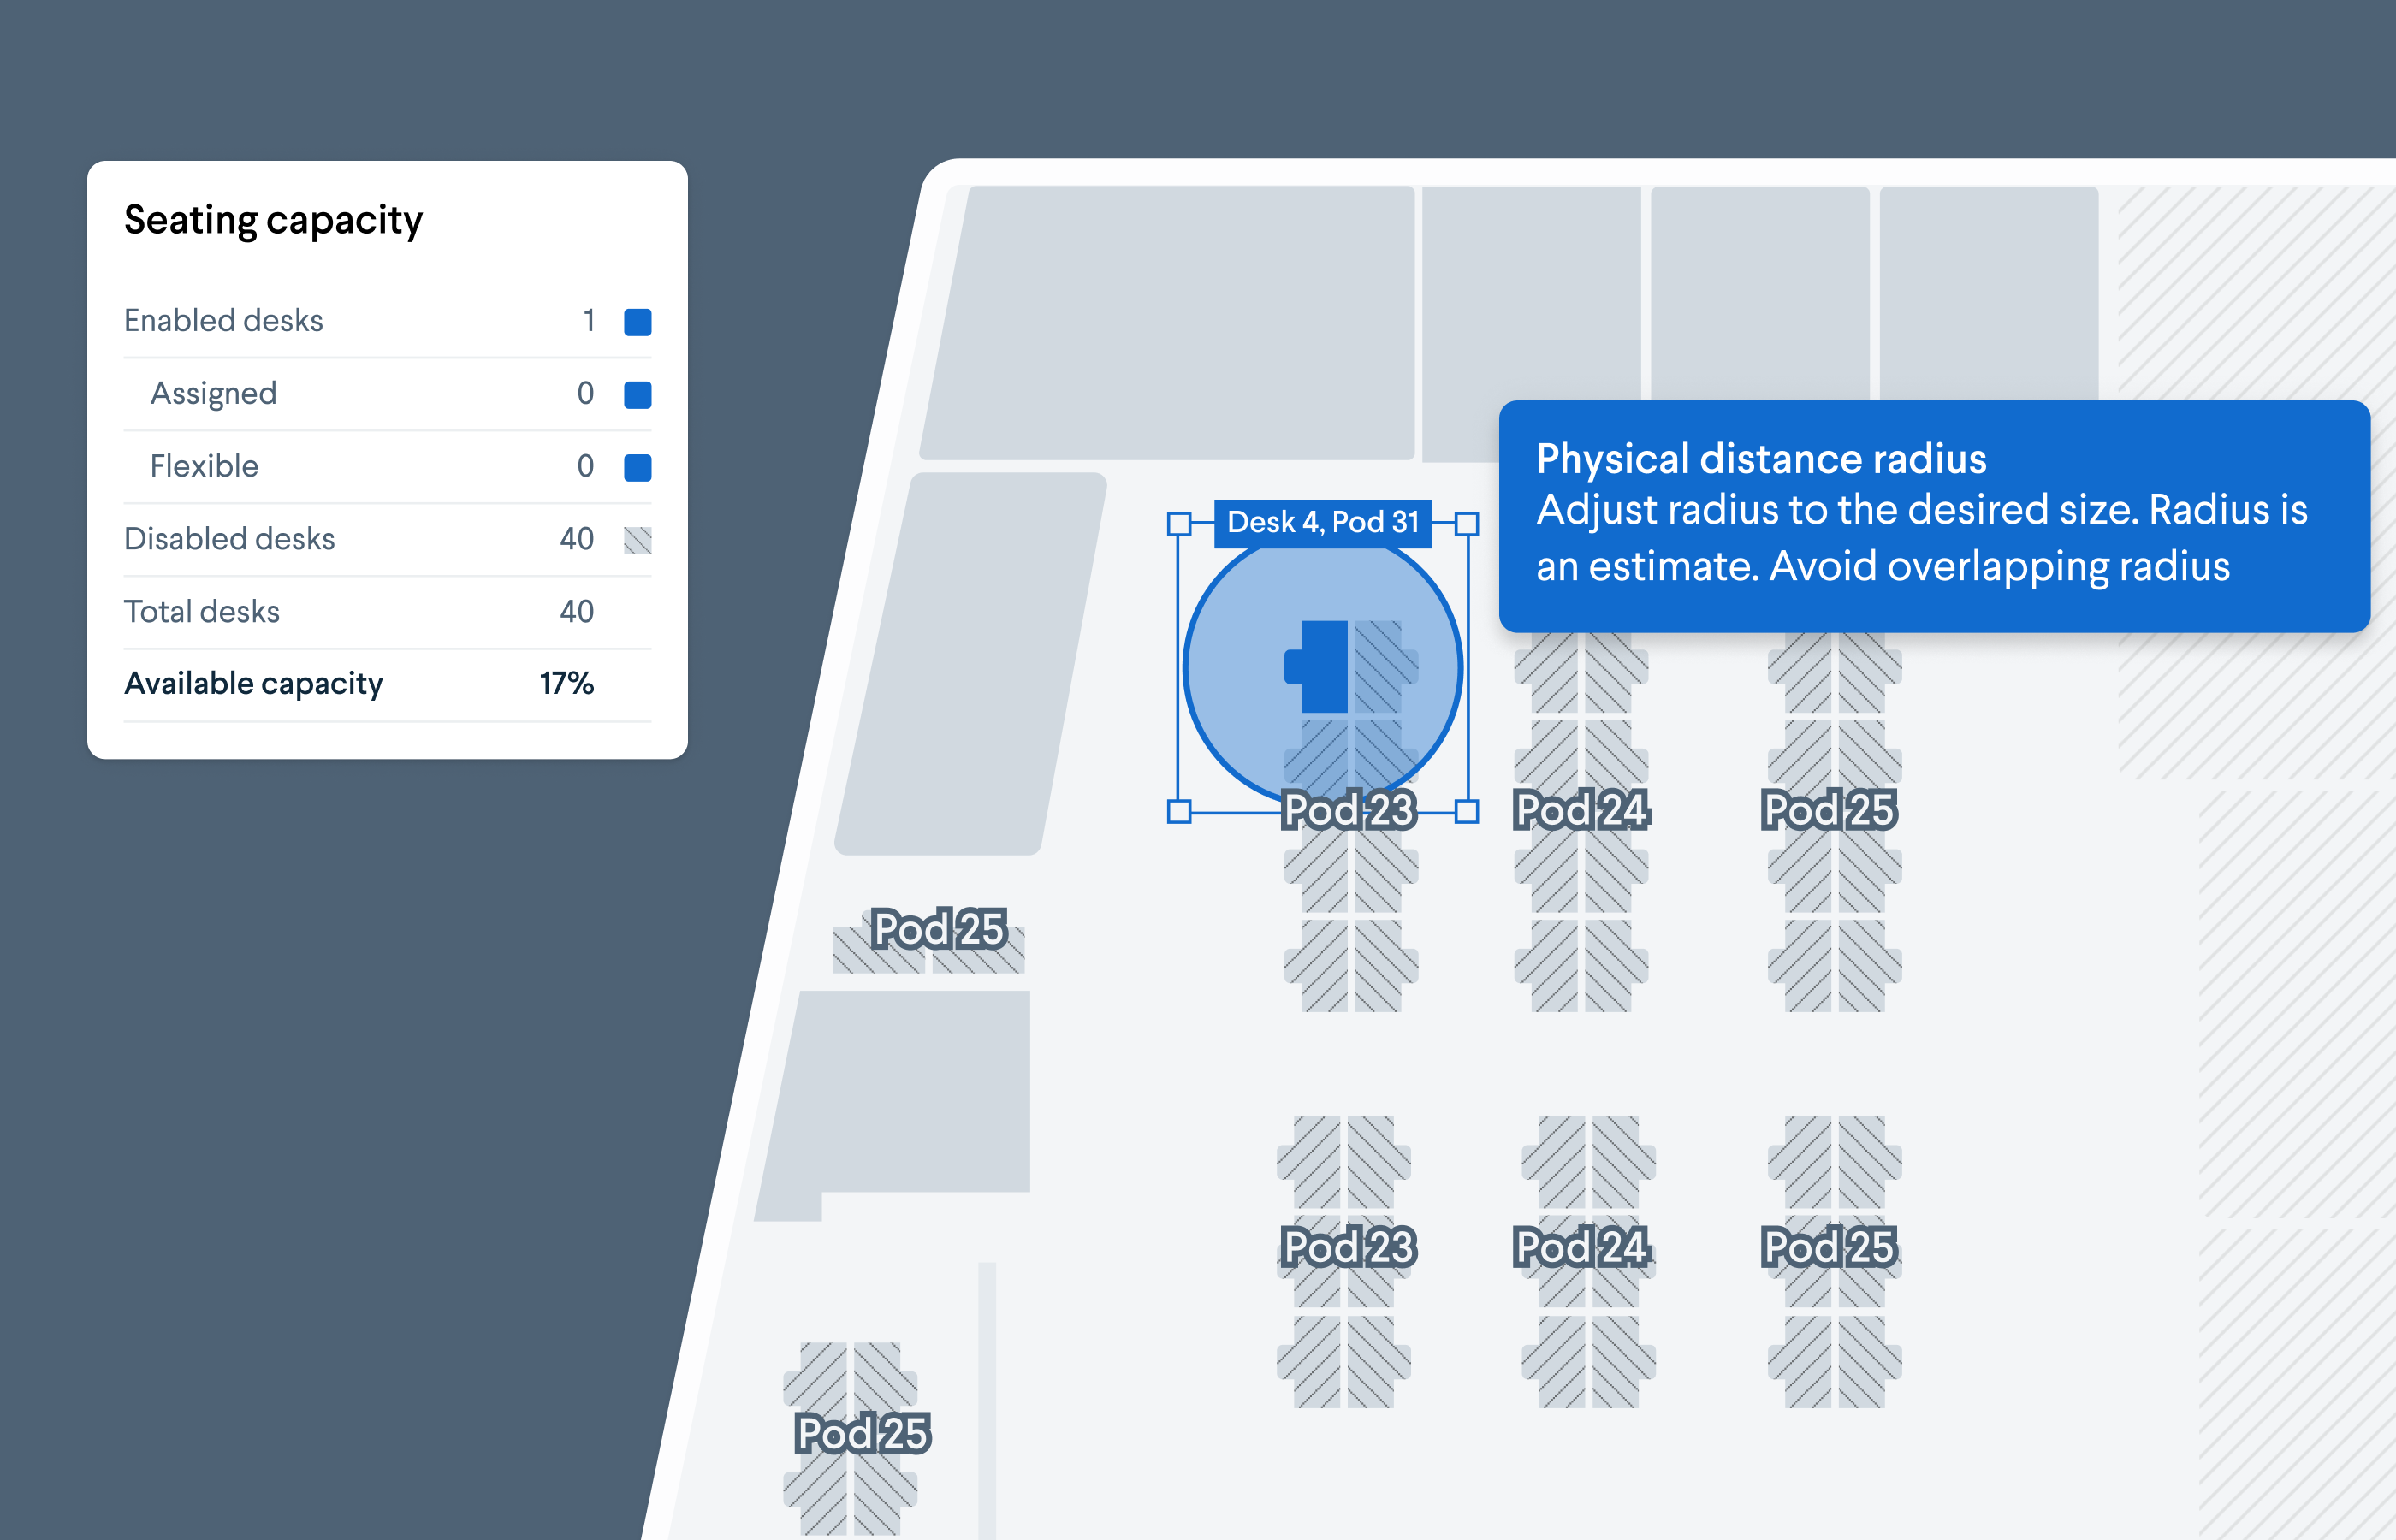 How To Plan Your Office Seating Chart Using Physical Distancing